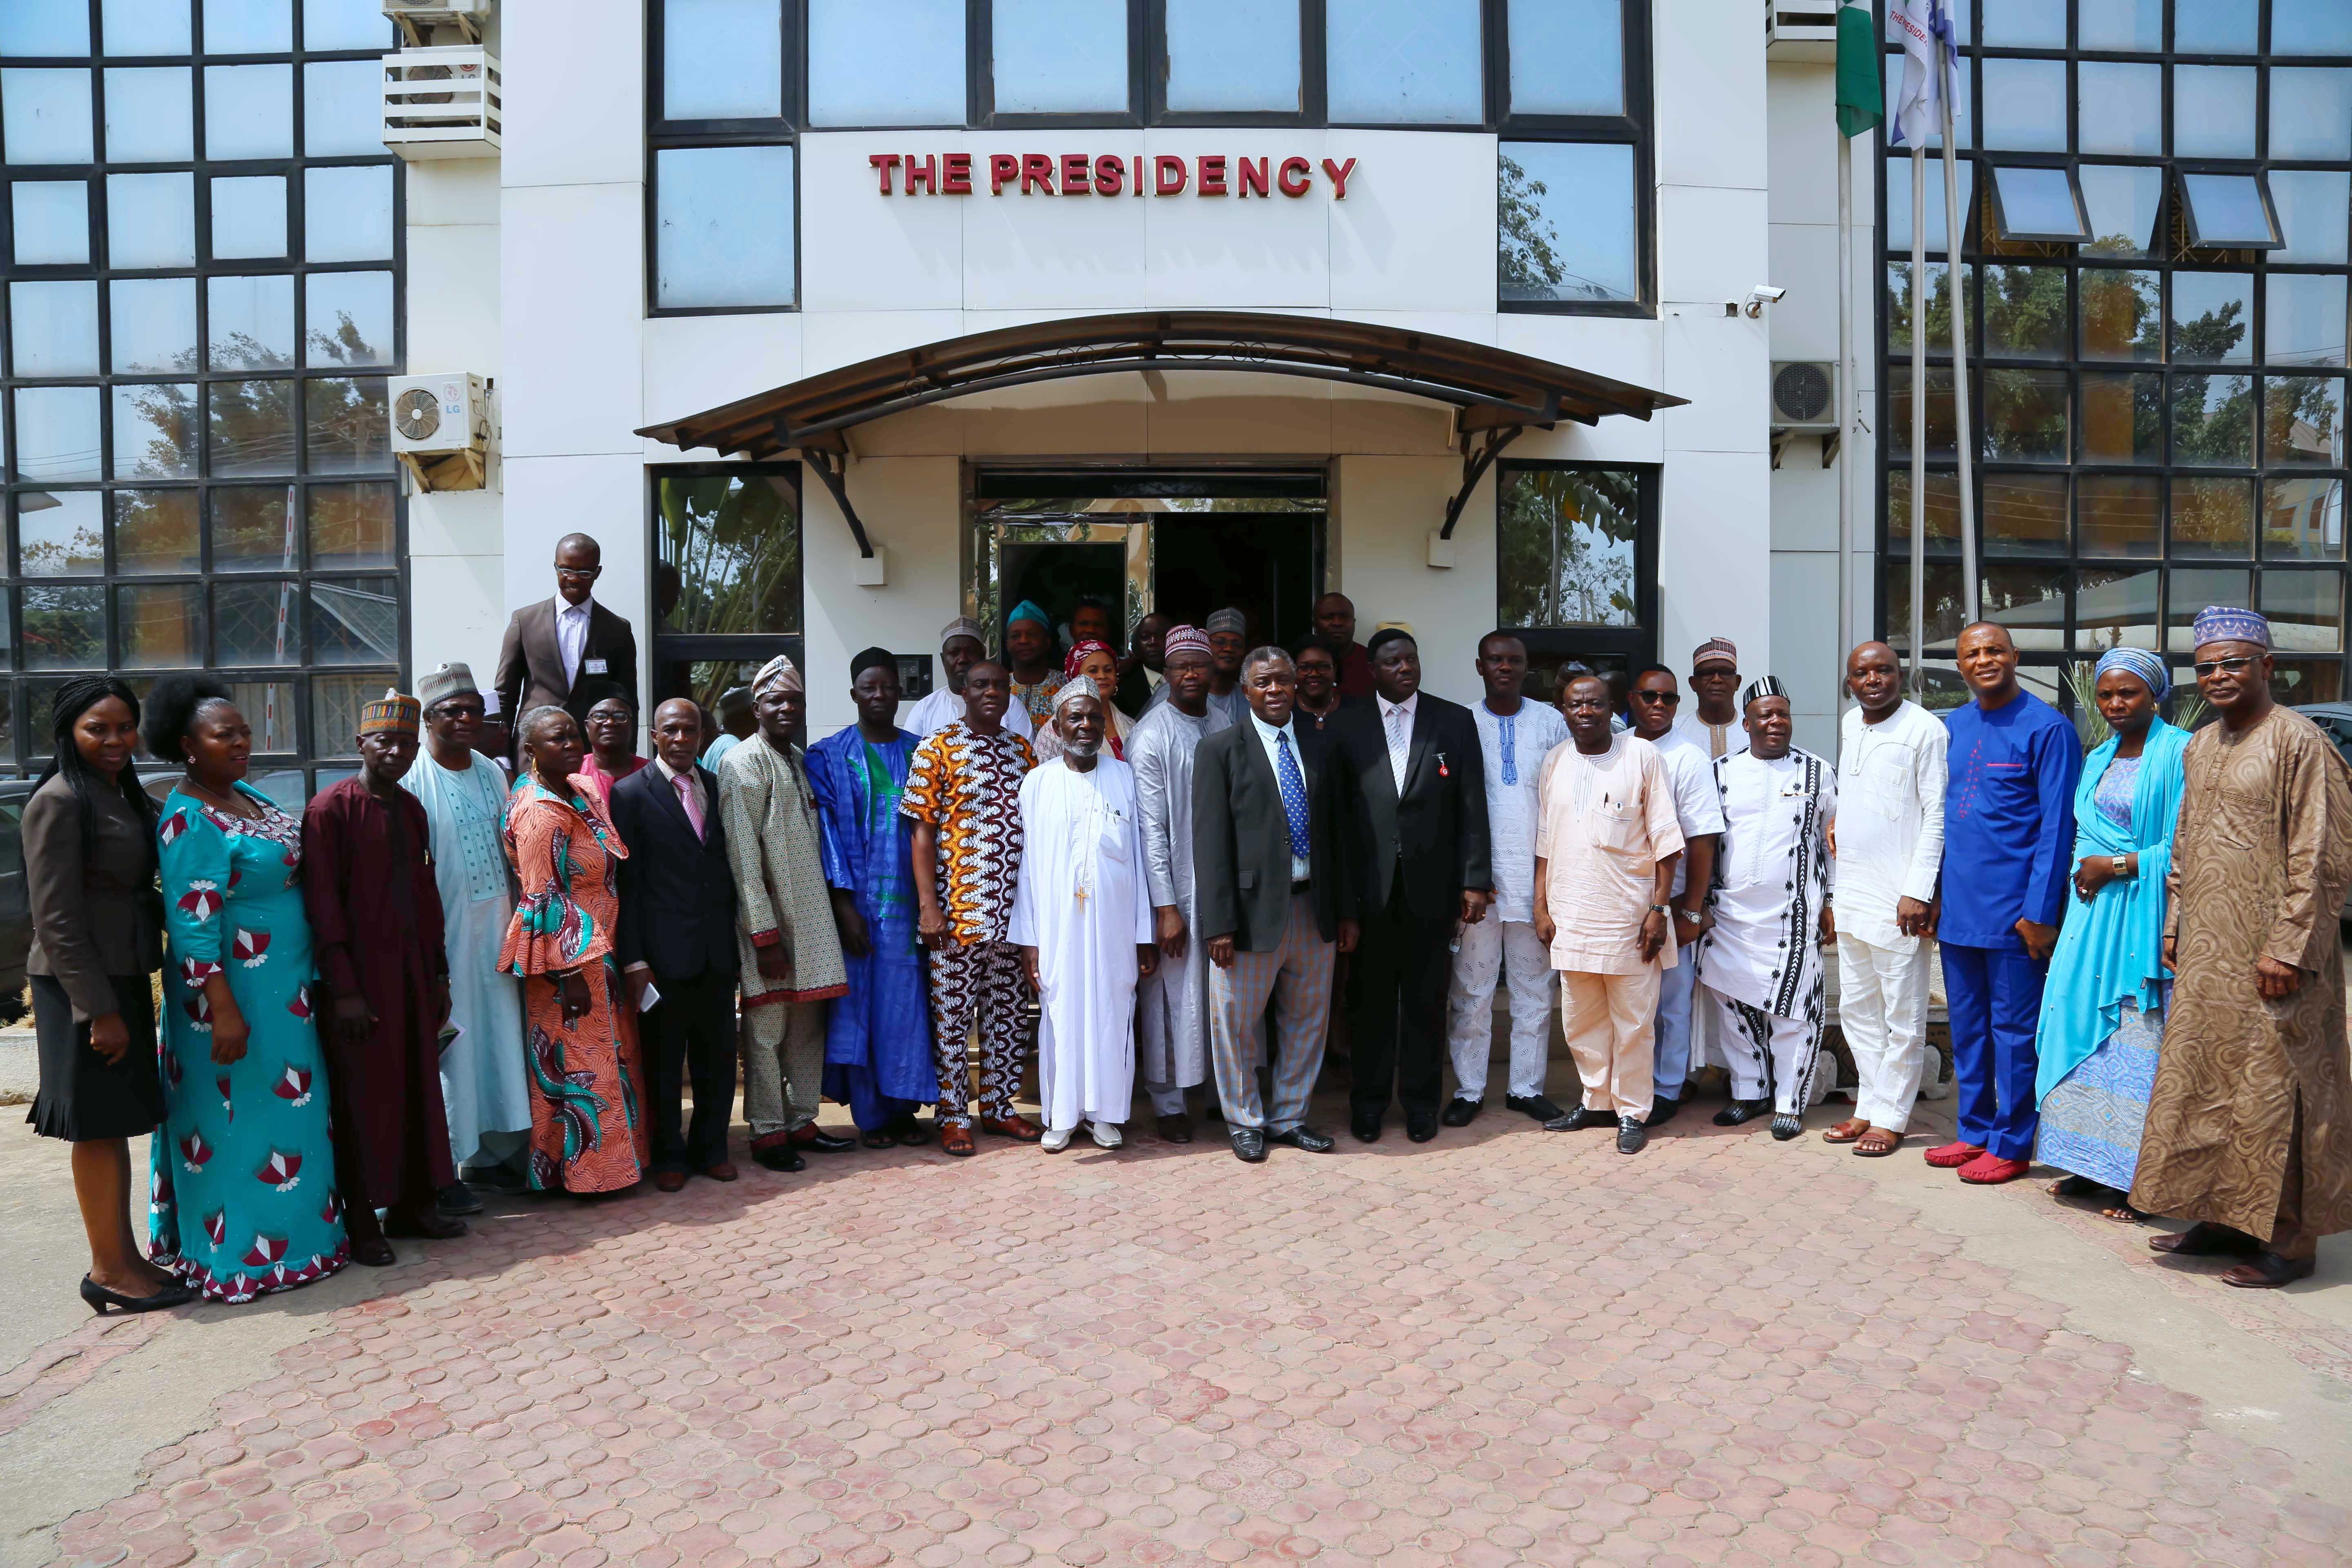 NCPC STRATEGIC REVIEW MEETING OF PILGRIMAGE LEADERS AND MANAGERS OF THE 36 STATES